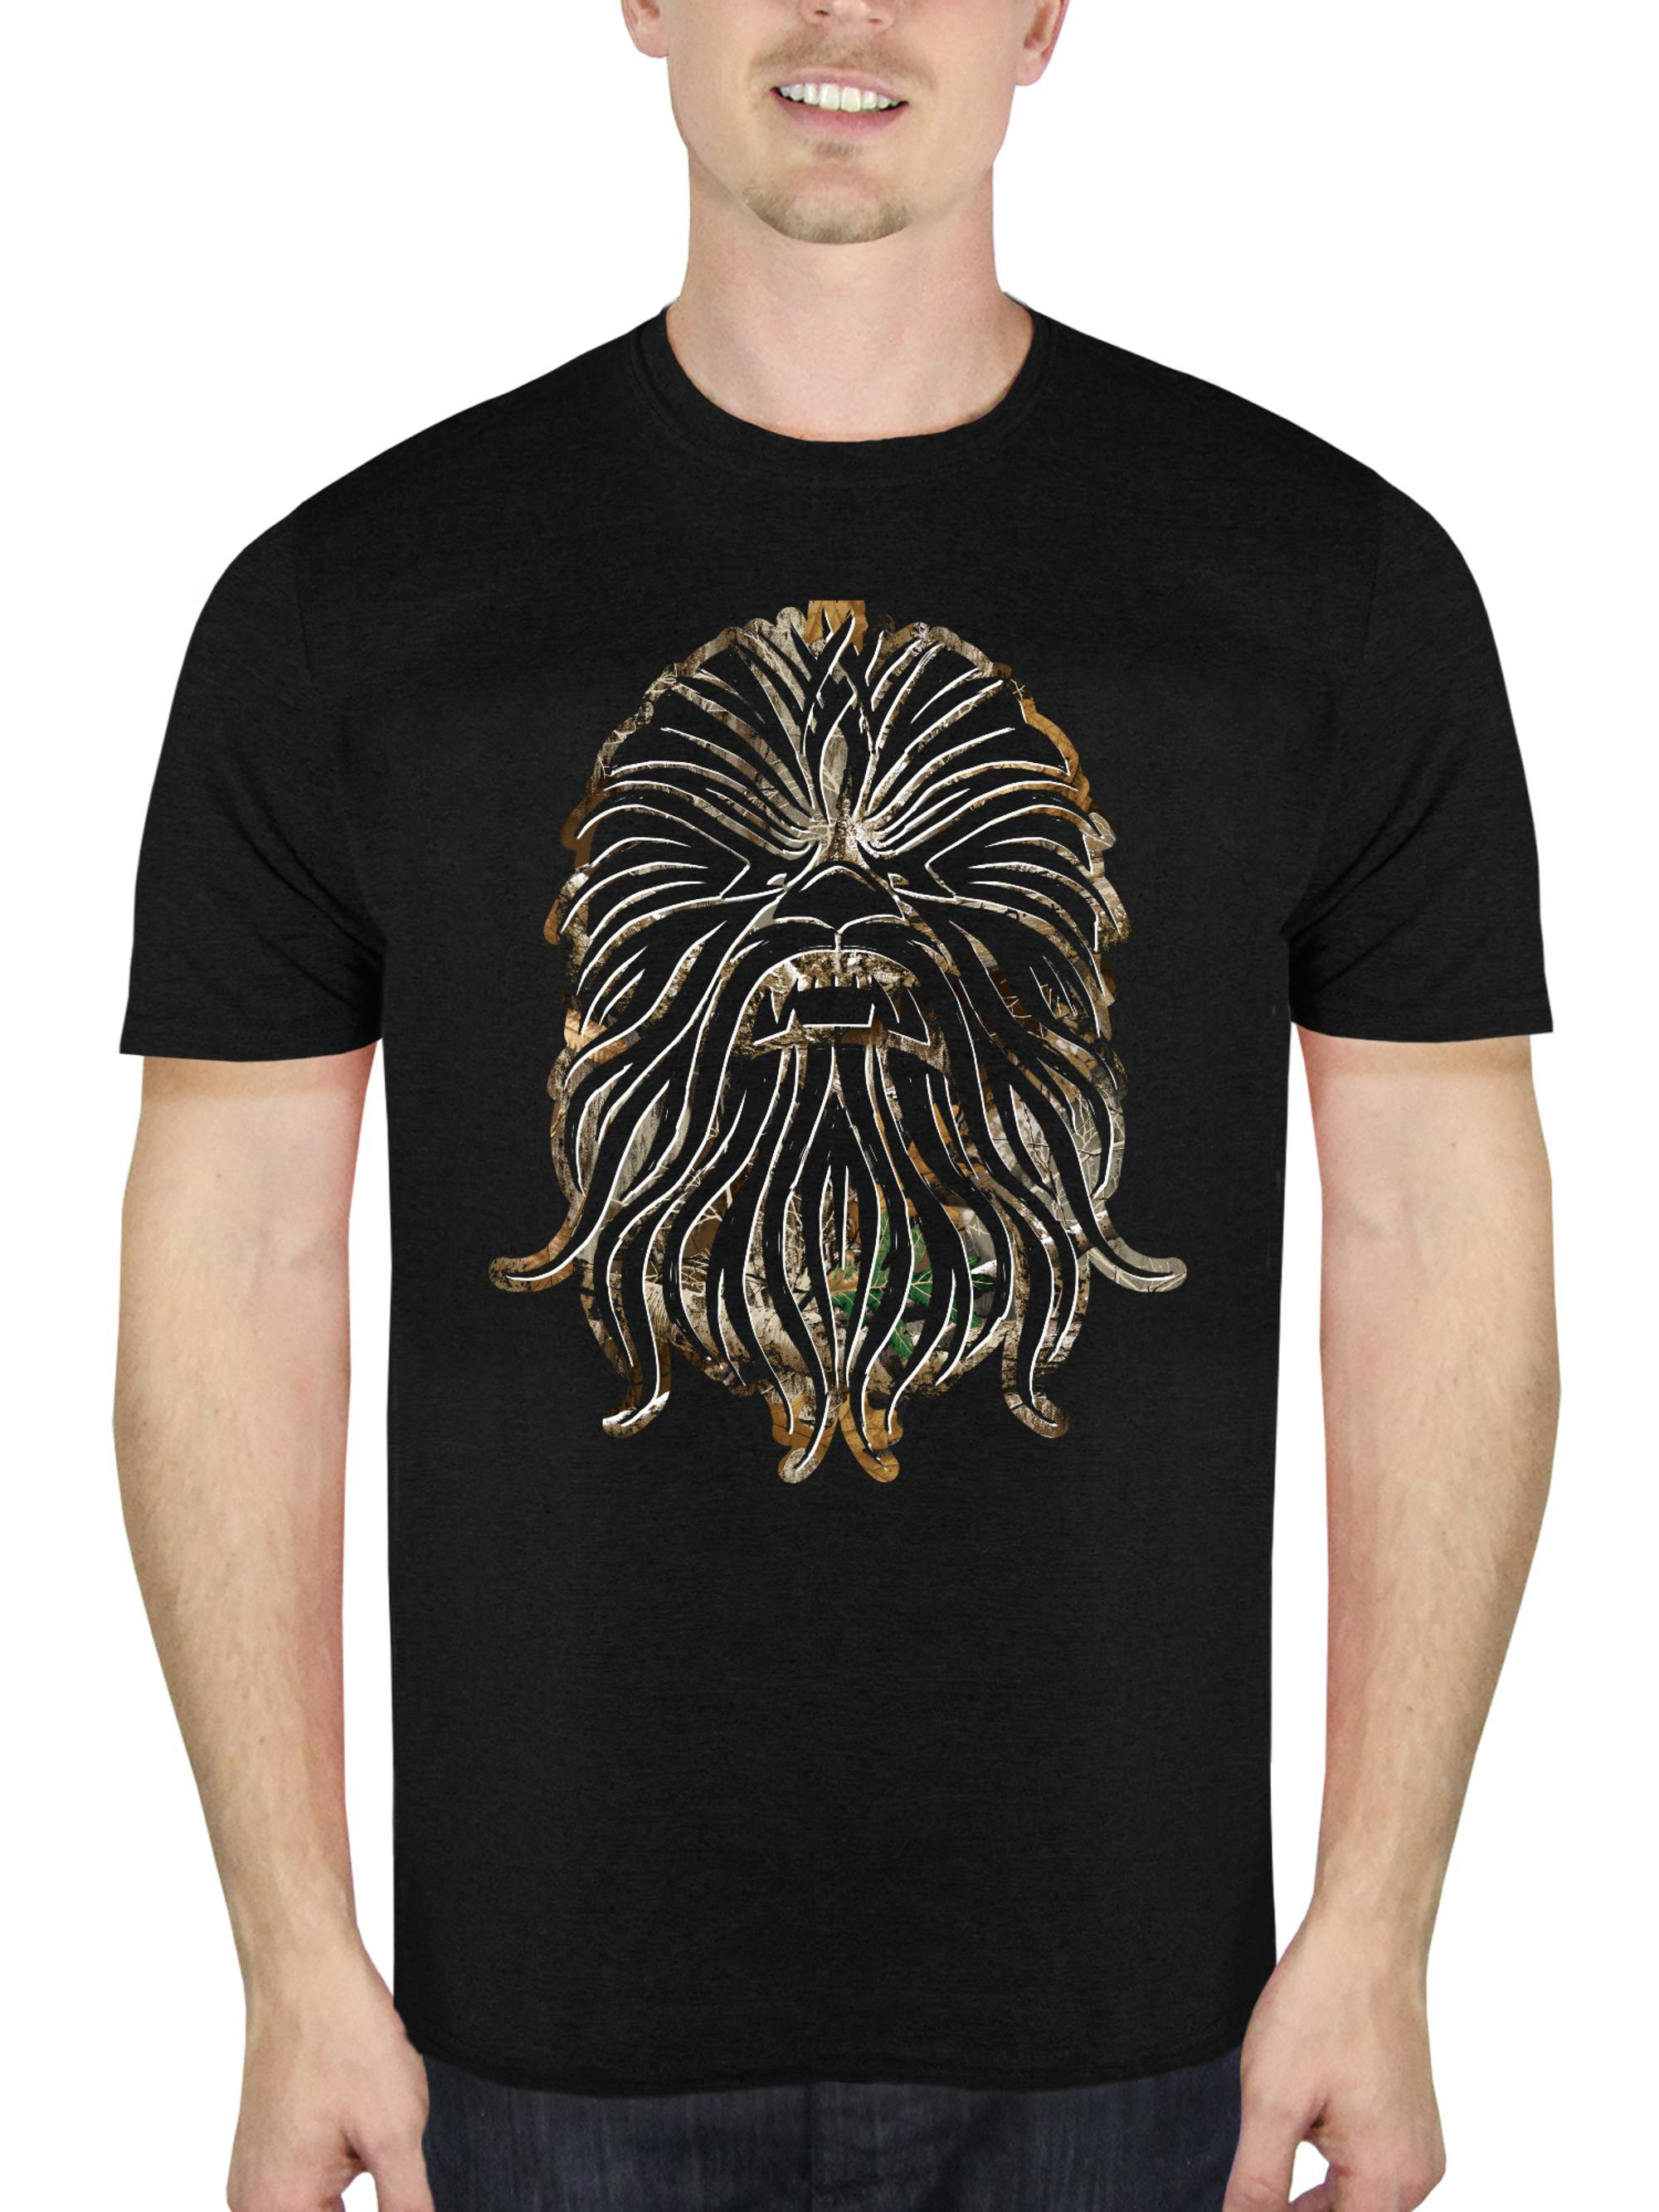 Solo: A Star Wars Story Men's Chewie Big Face Short Sleeve Graphic T-Shirt, up to Size 2XL